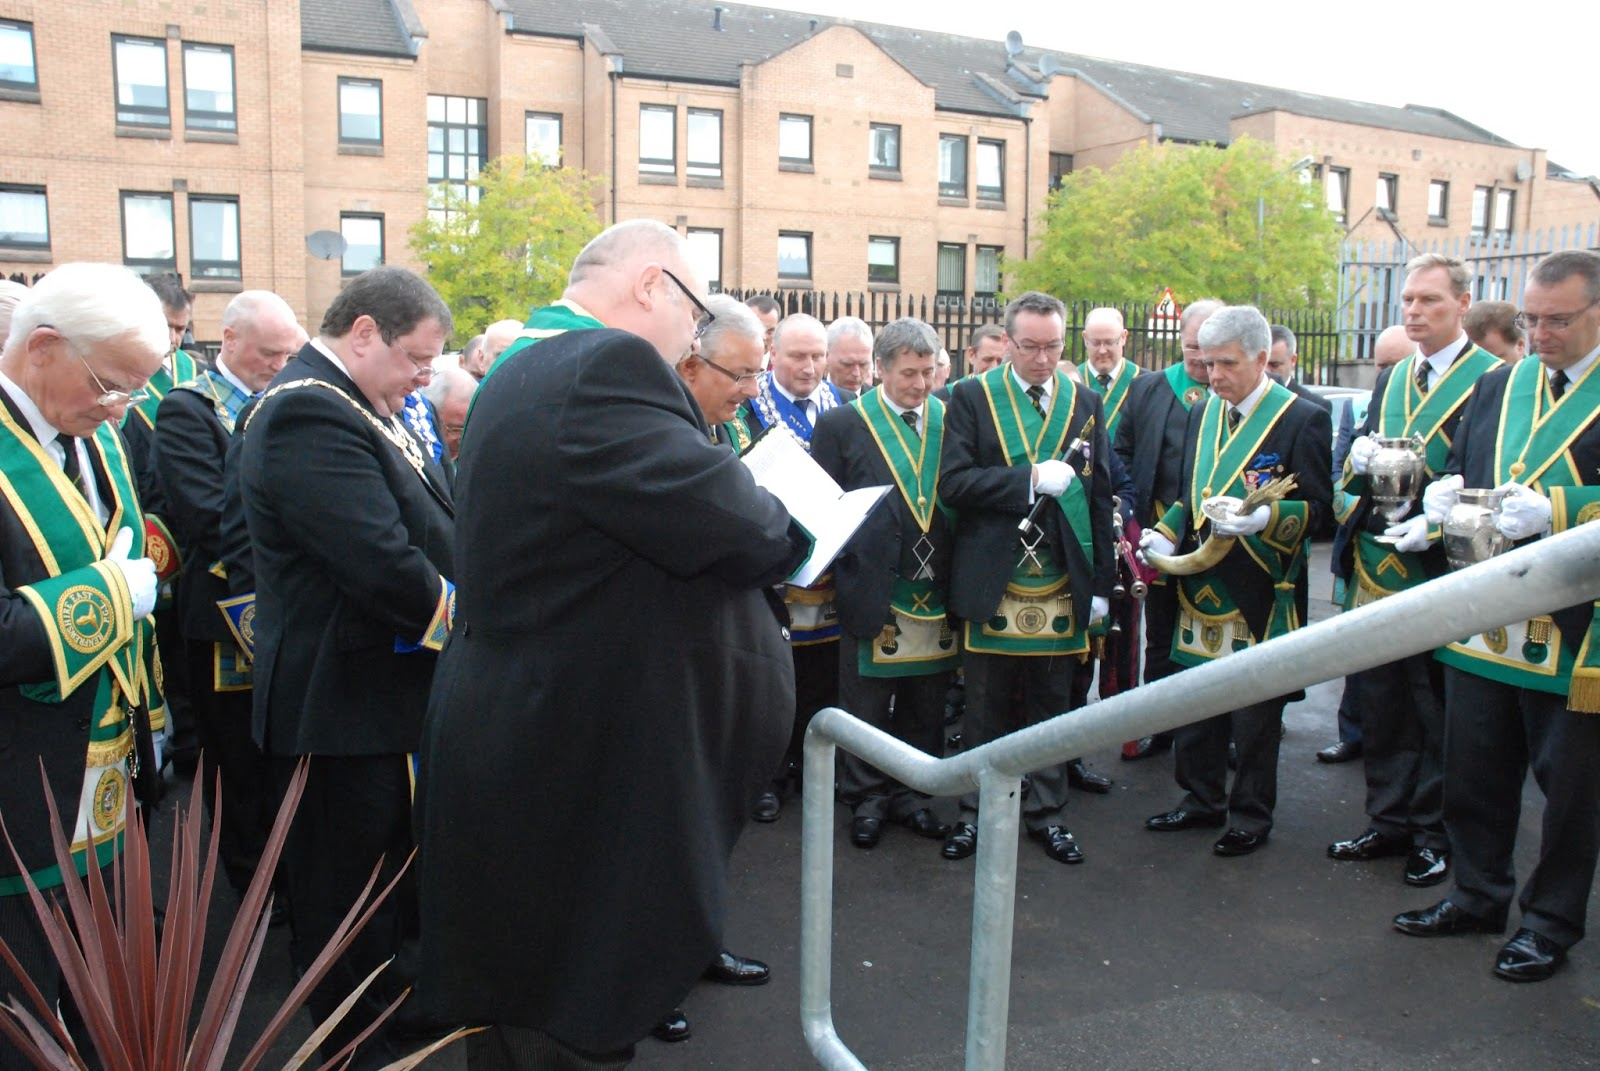 GOLDEN JUBILEE CELEBRATIONS AT LODGE NITSHILL | PGLRE News